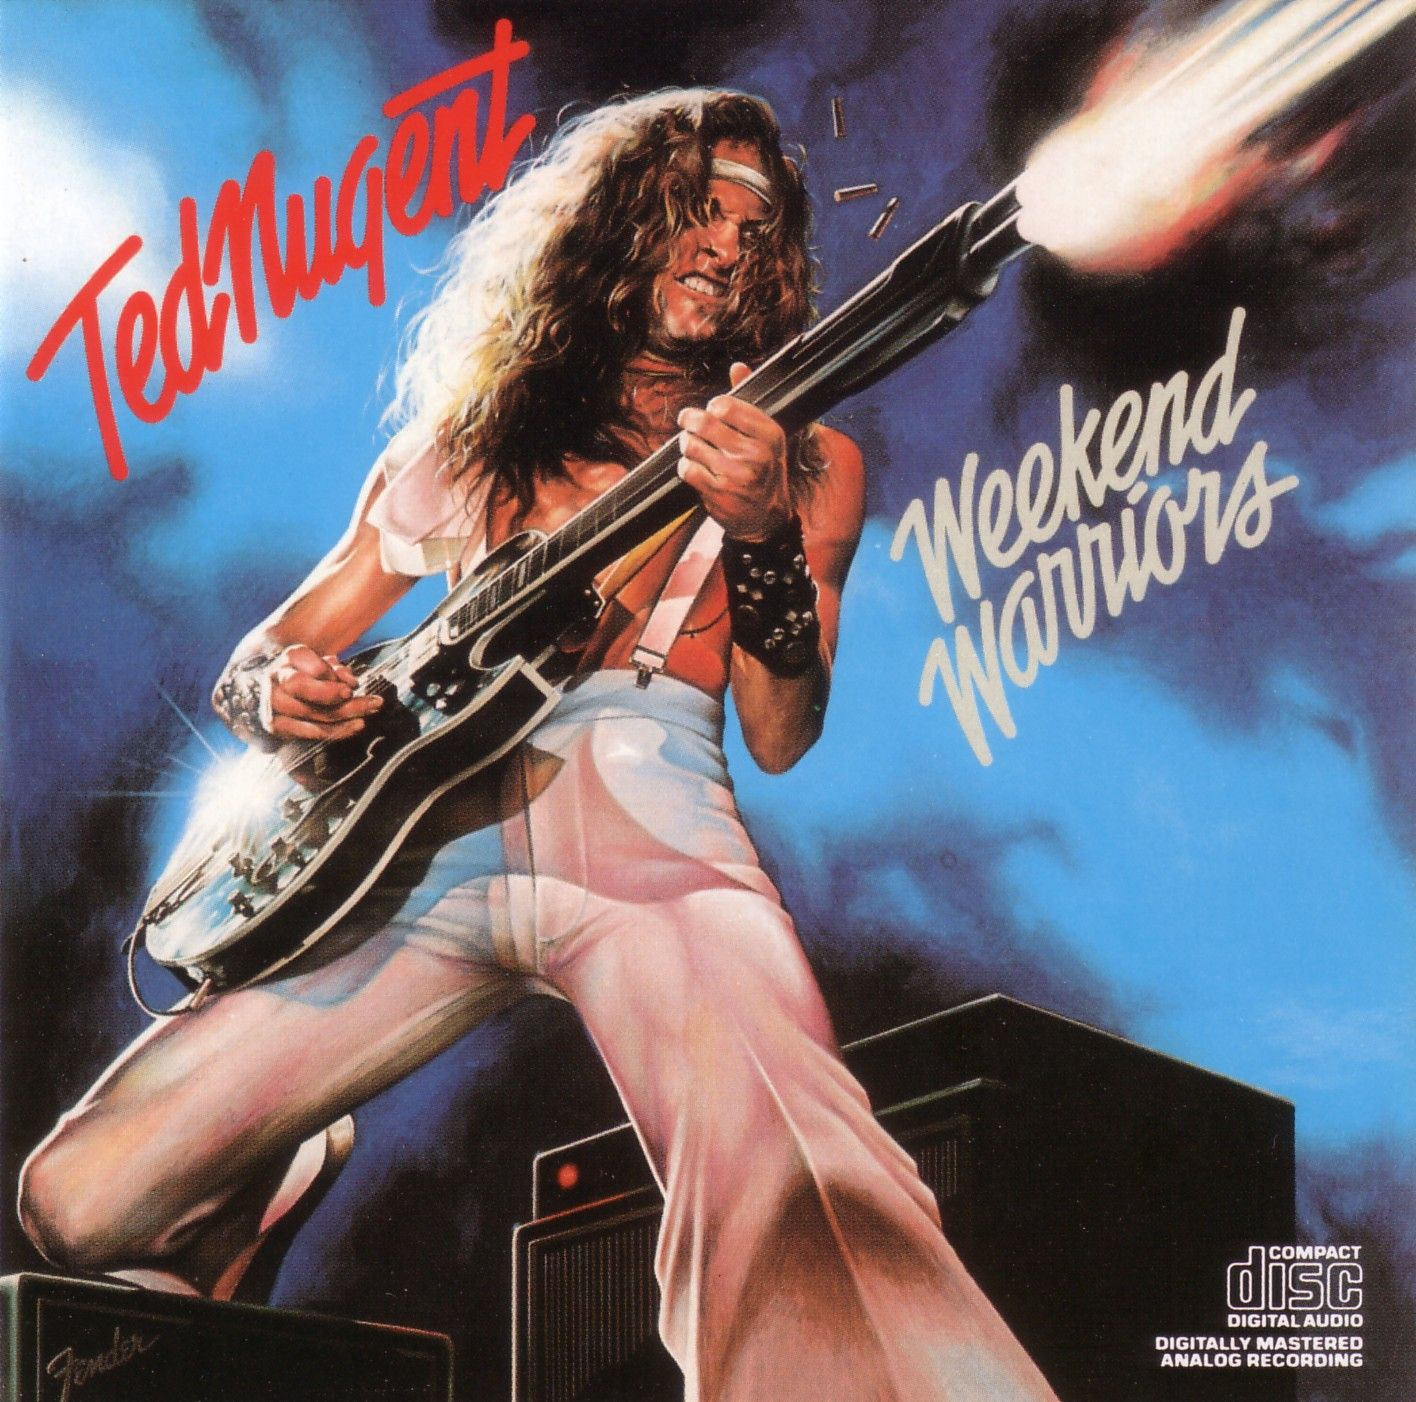 Ted Nugent Weekend Warriors Classic Rock Albums Rock Album Covers Album Covers